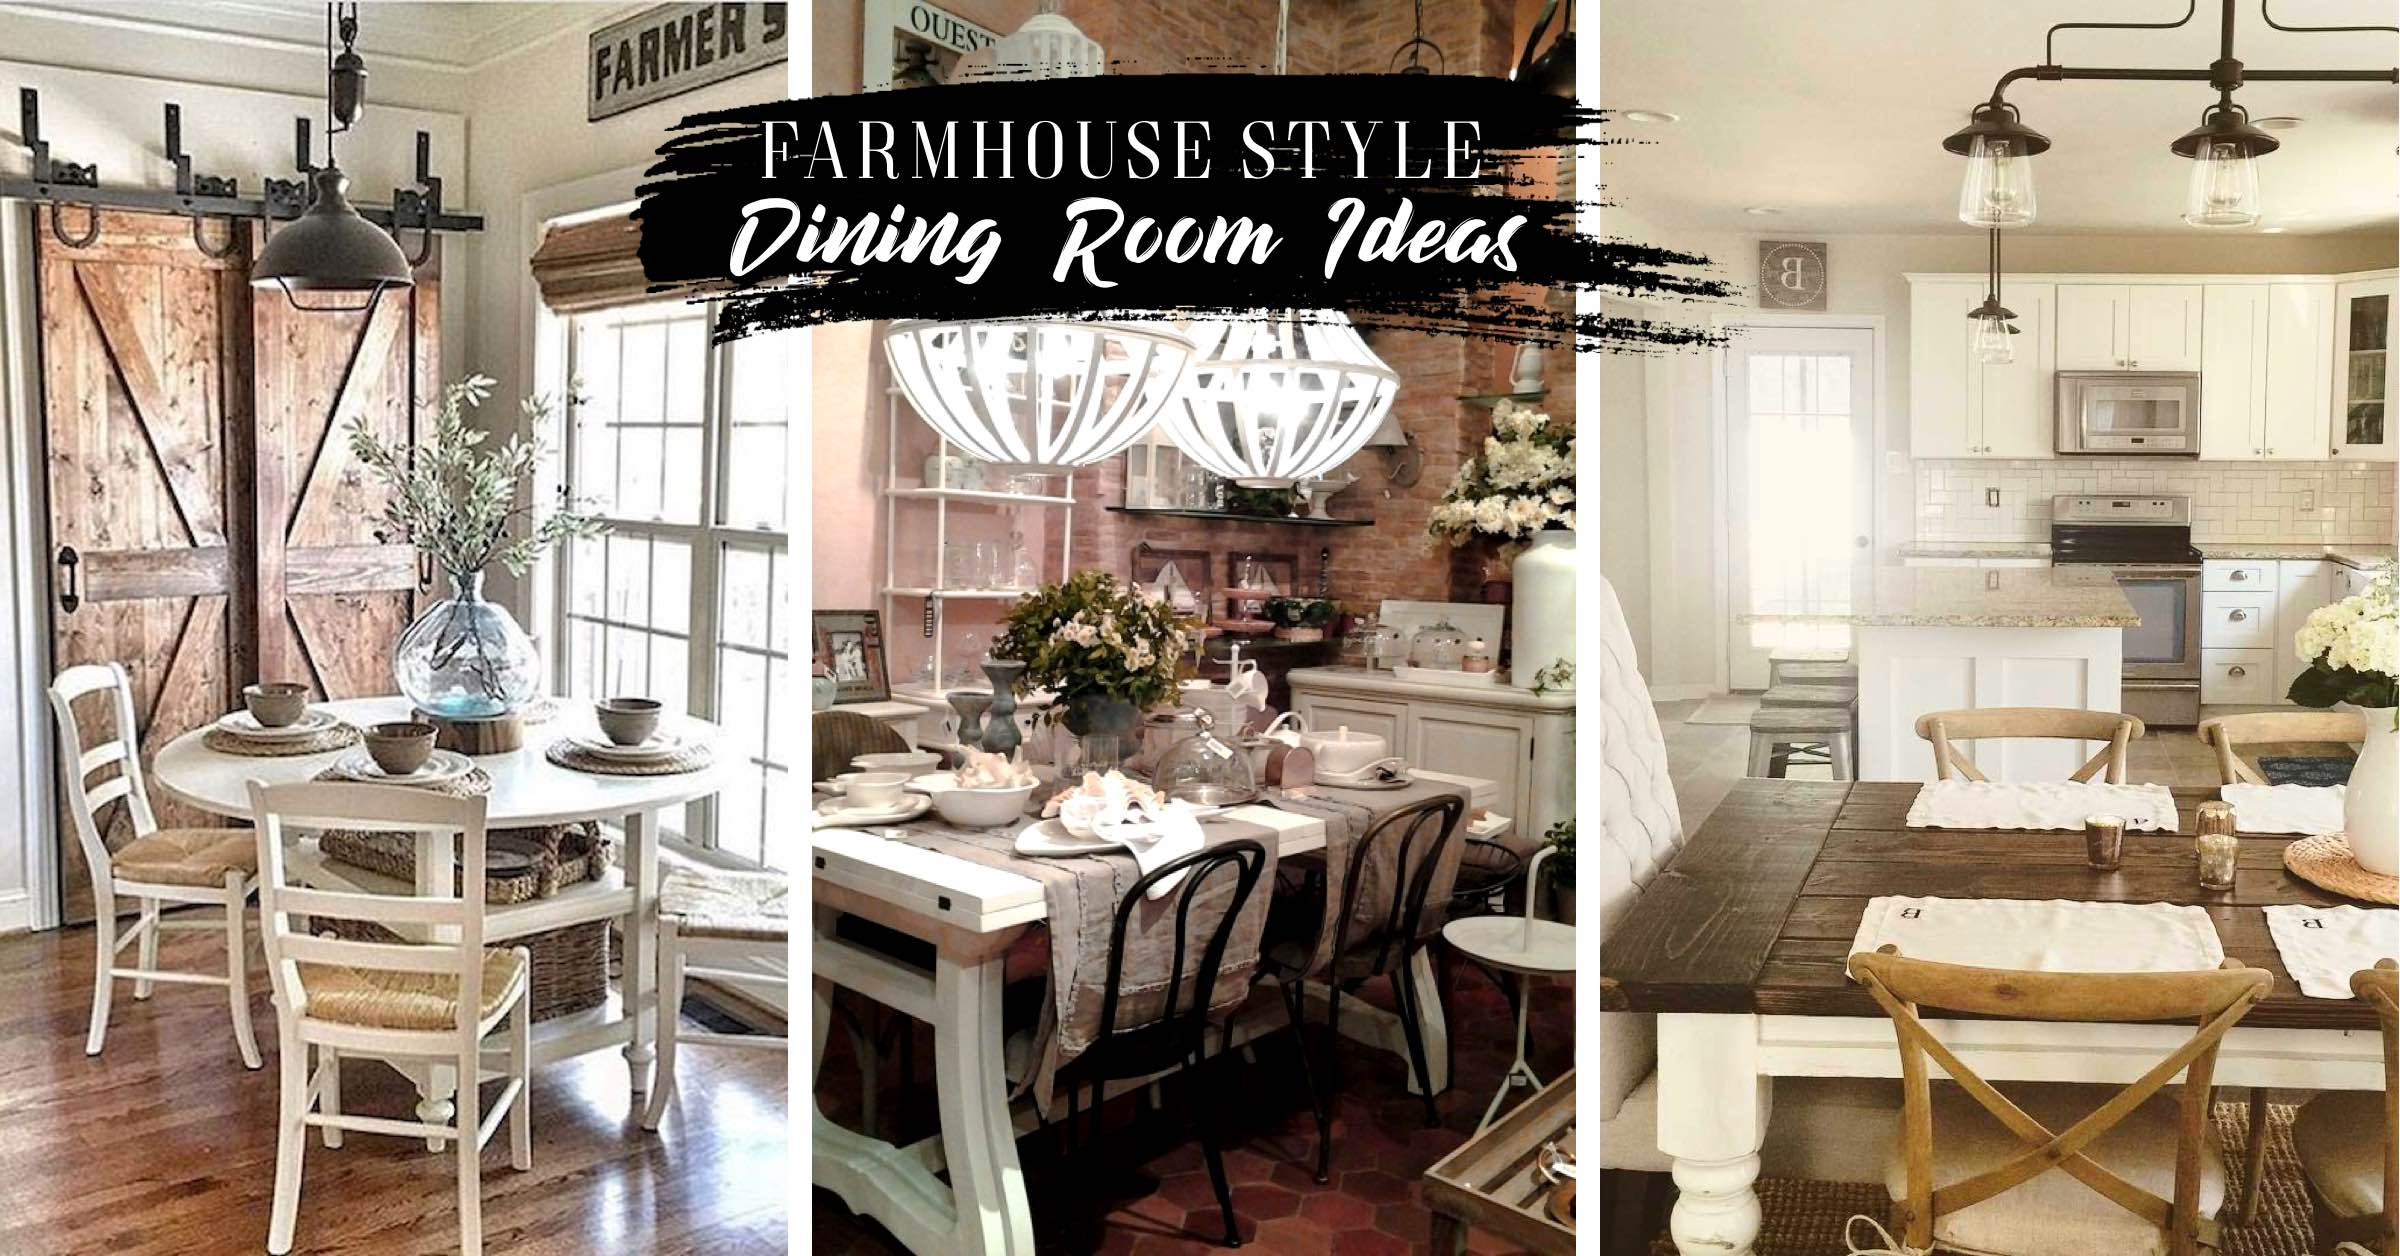 20 Farmhouse Style Dining Room Ideas You Ll Want To Integrate Into Your Home